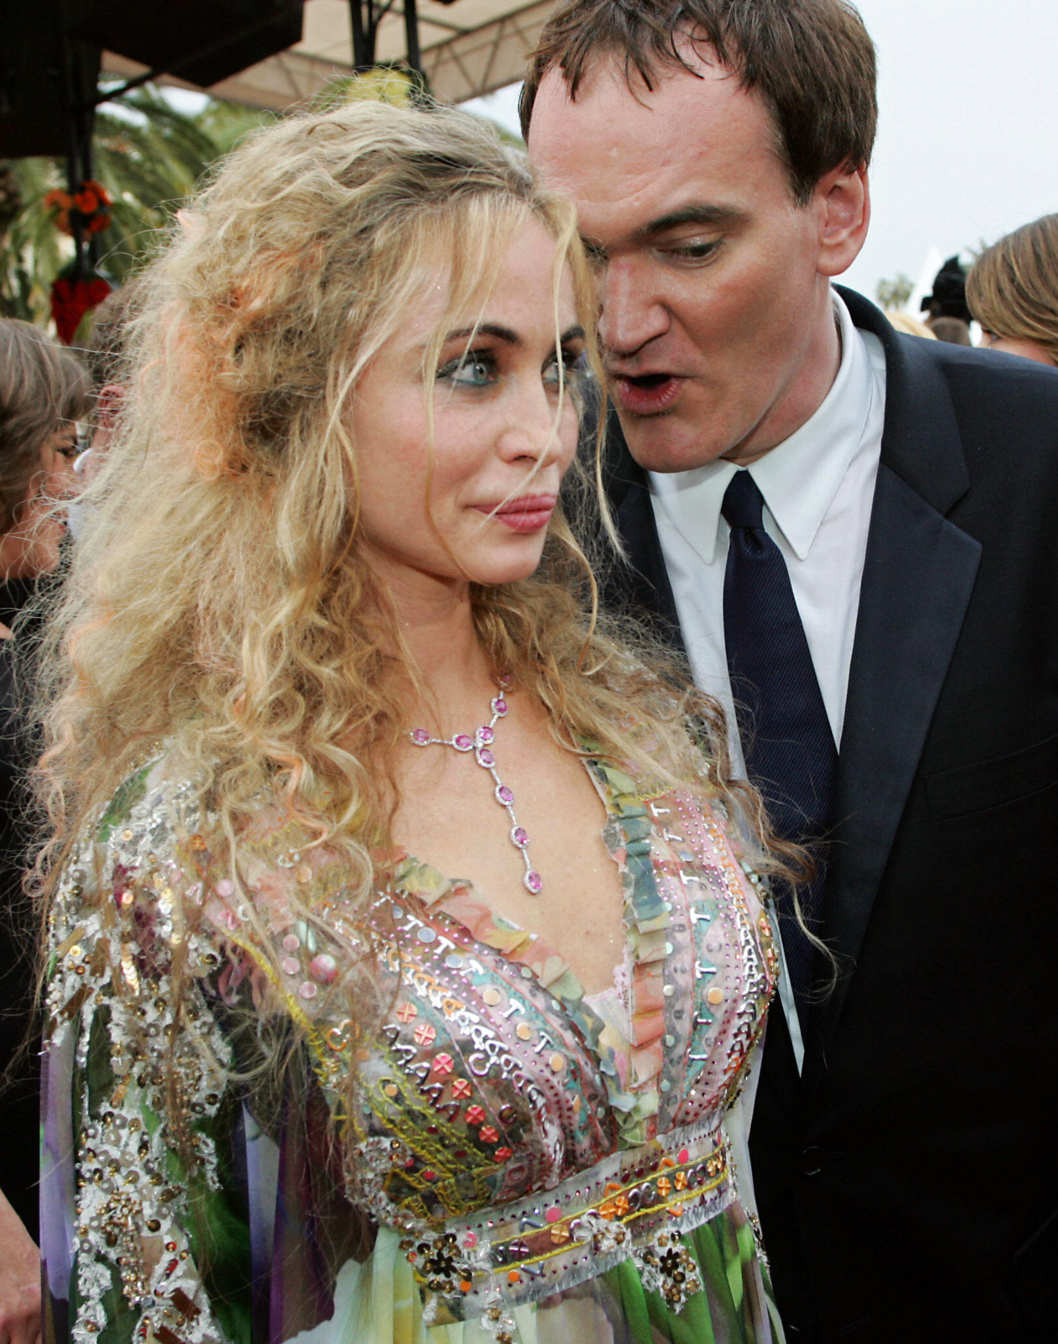 CANNES, France:  French actress Emmanuelle Beart and US director Quentin Tarantino arrive to attend the opening ceremony at the 57th Cannes International Film Festival, 12 May 2004, in the French Riveria town of Cannes. The world's top film festival opened for its annual 12-day swirl of projections, parties and publicity after finessing a last-minute deal with protesting French entertainment industry workers to stop them sabotaging the event. AFP PHOTO FRANCOIS GUILLOT  (Photo credit should read FRANCOIS GUILLOT/AFP/Getty Images)